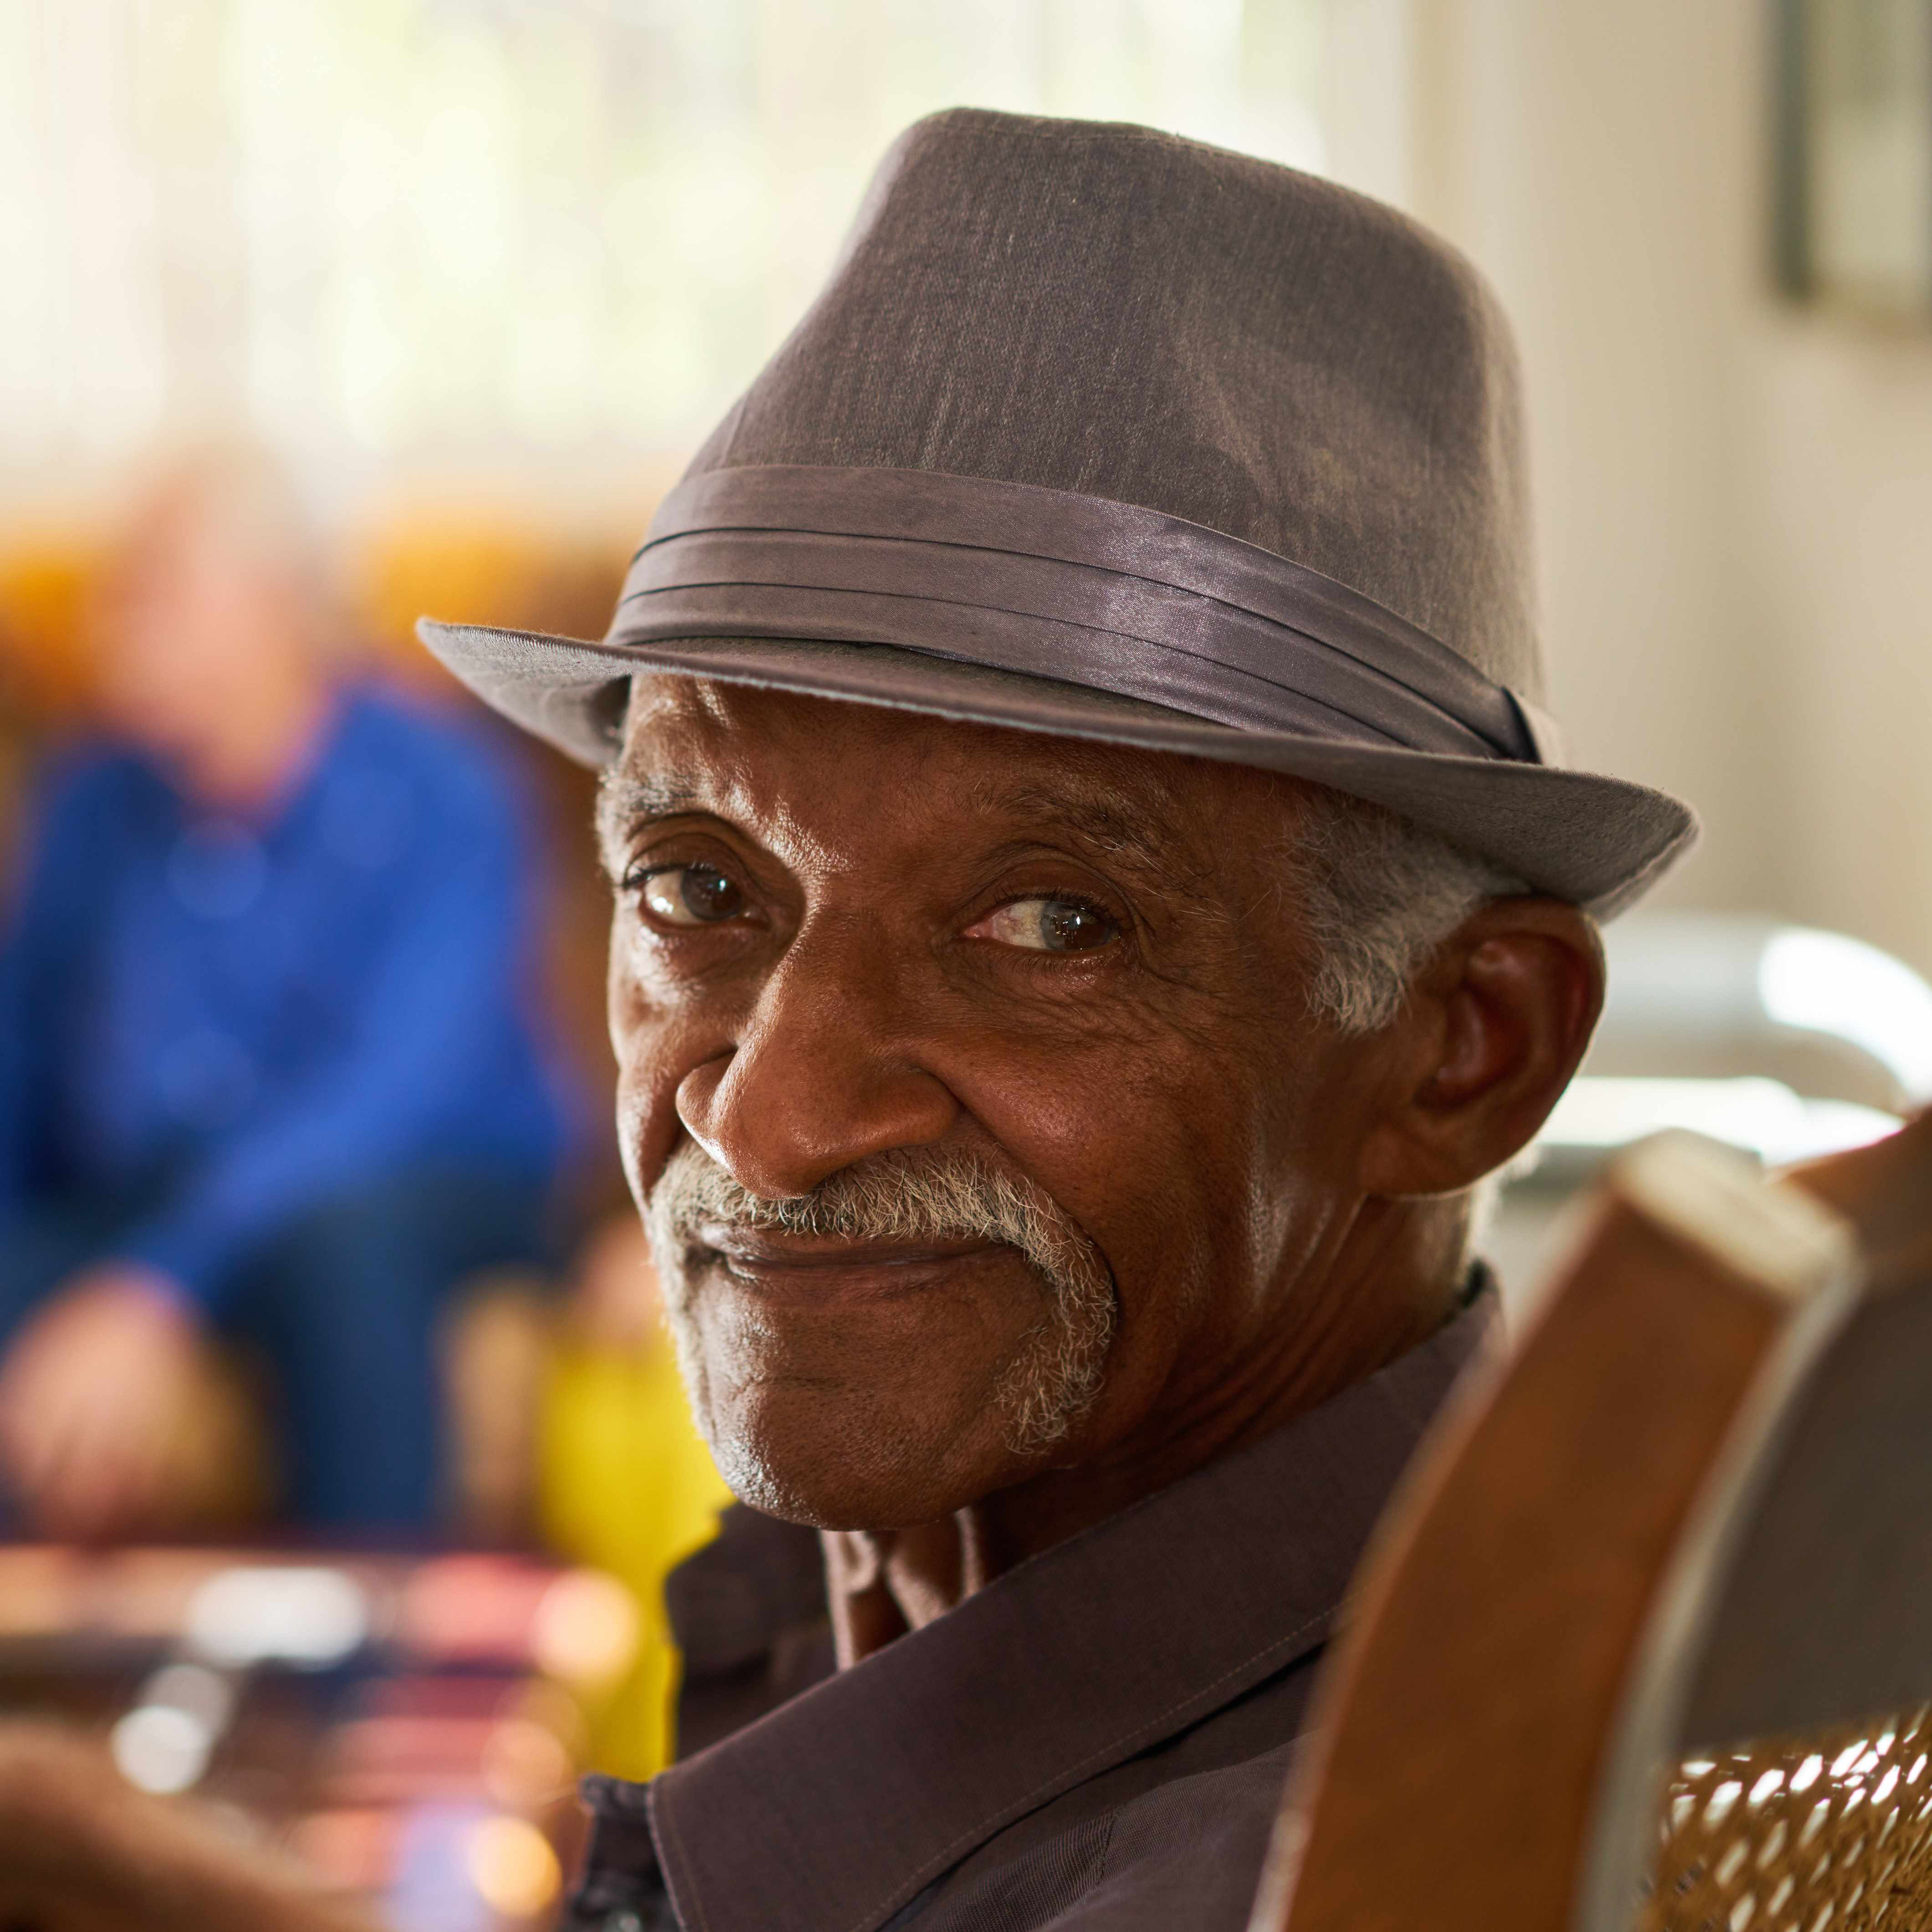 a smiling elderly man sitting in a chair at home